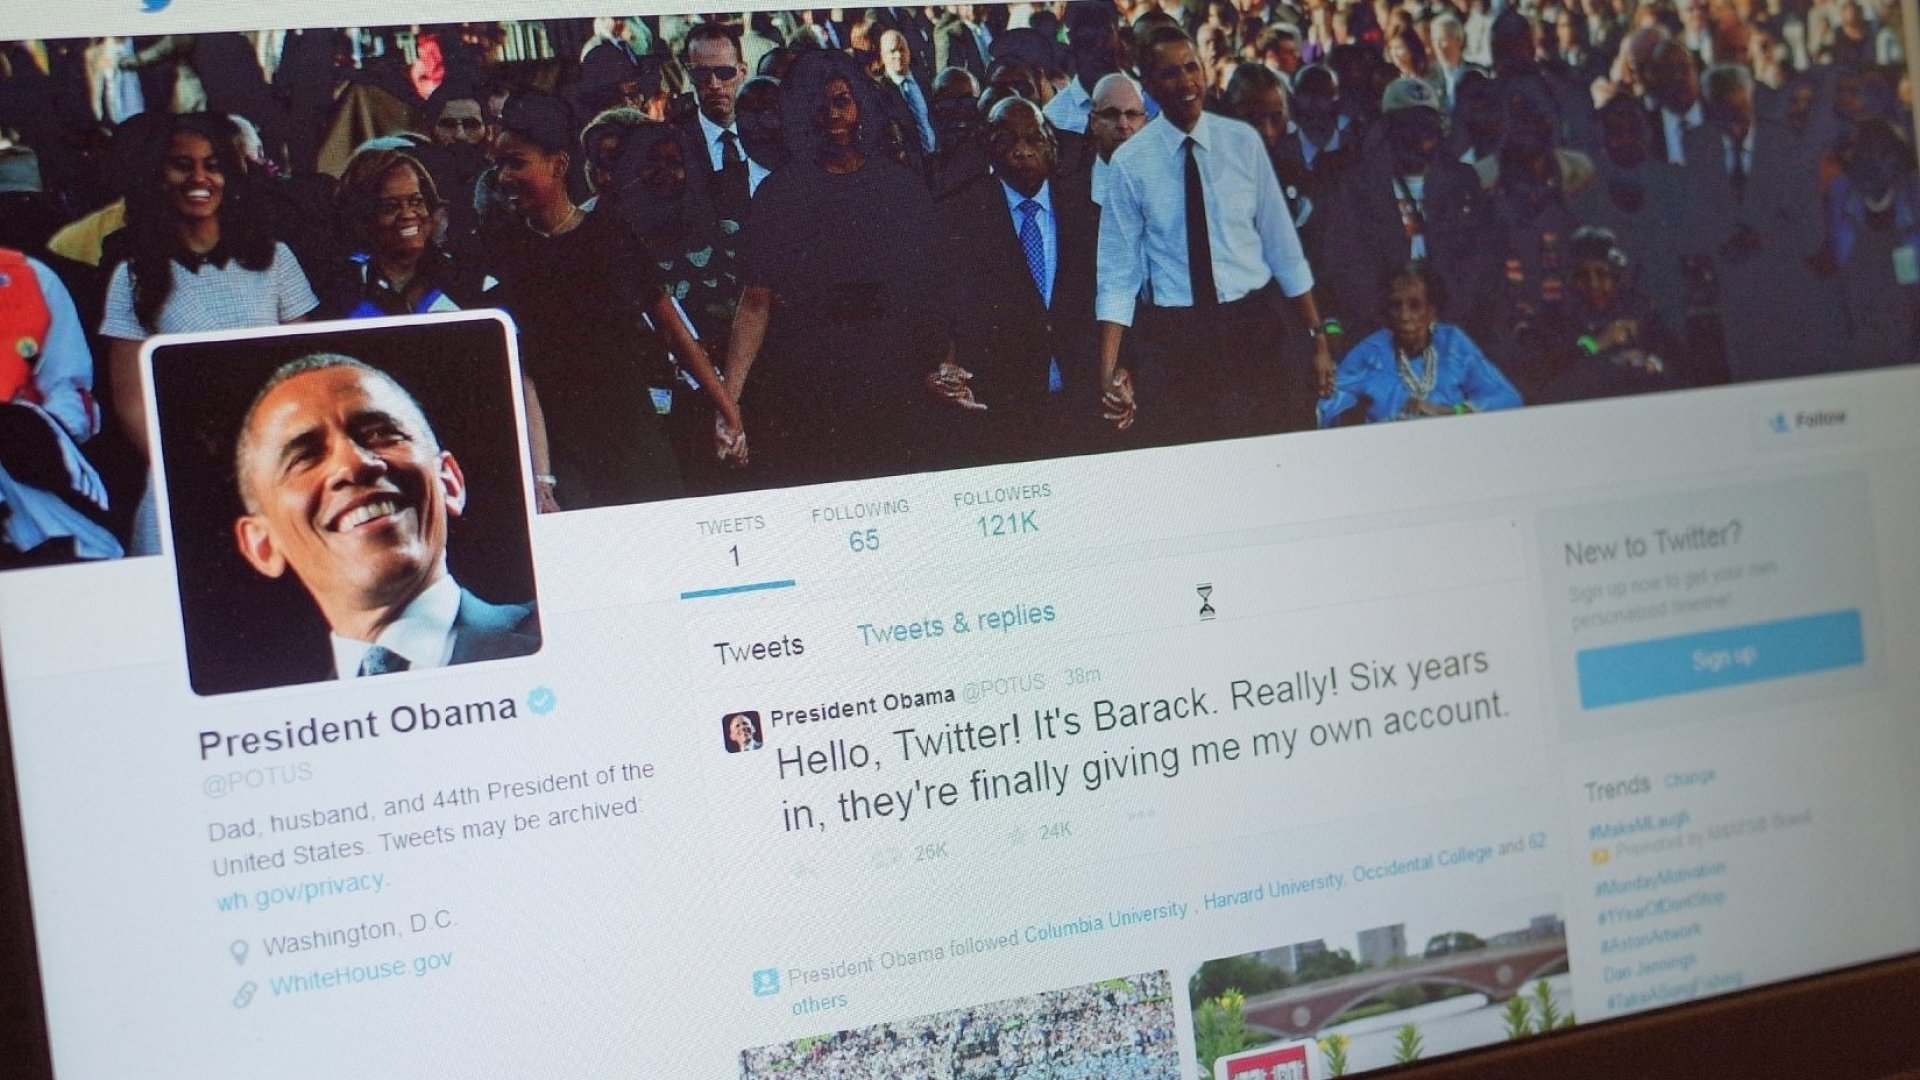 Obama Will Transfer Twitter, Facebook Accounts to New President